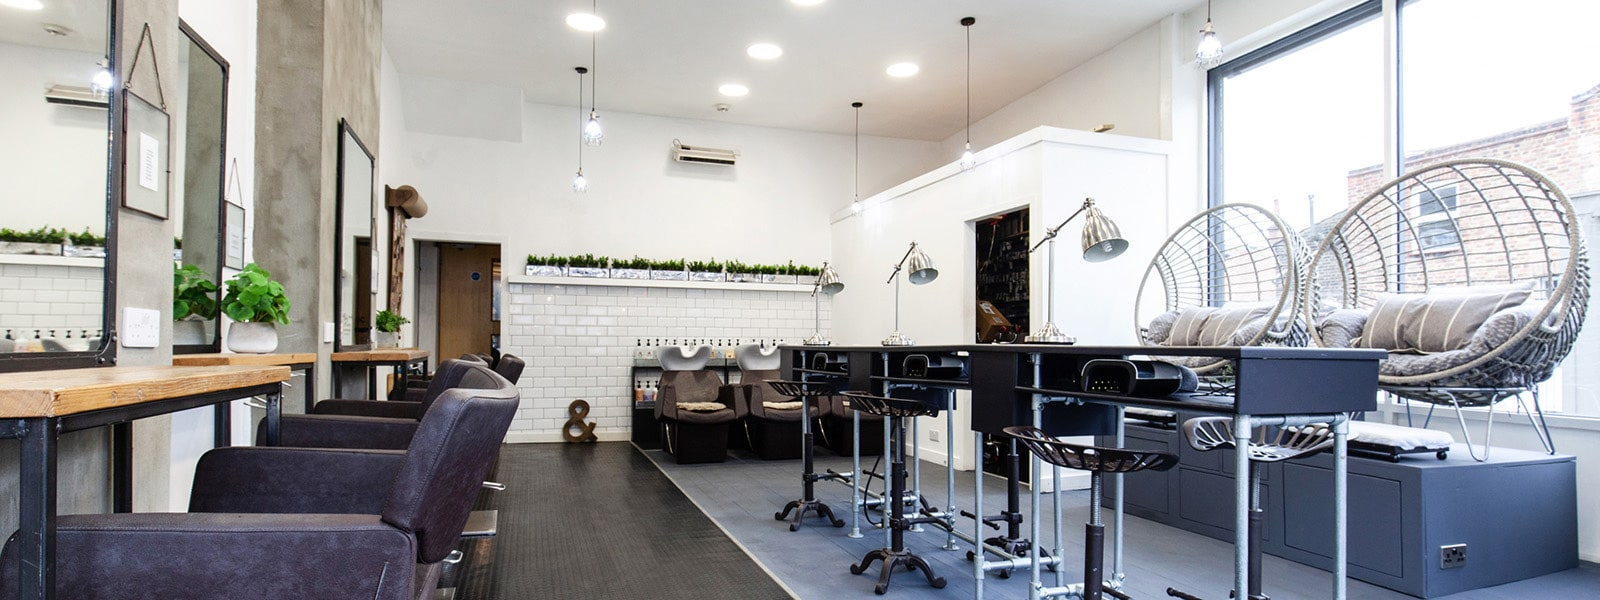 Beauty and wellness spa in Greenwich